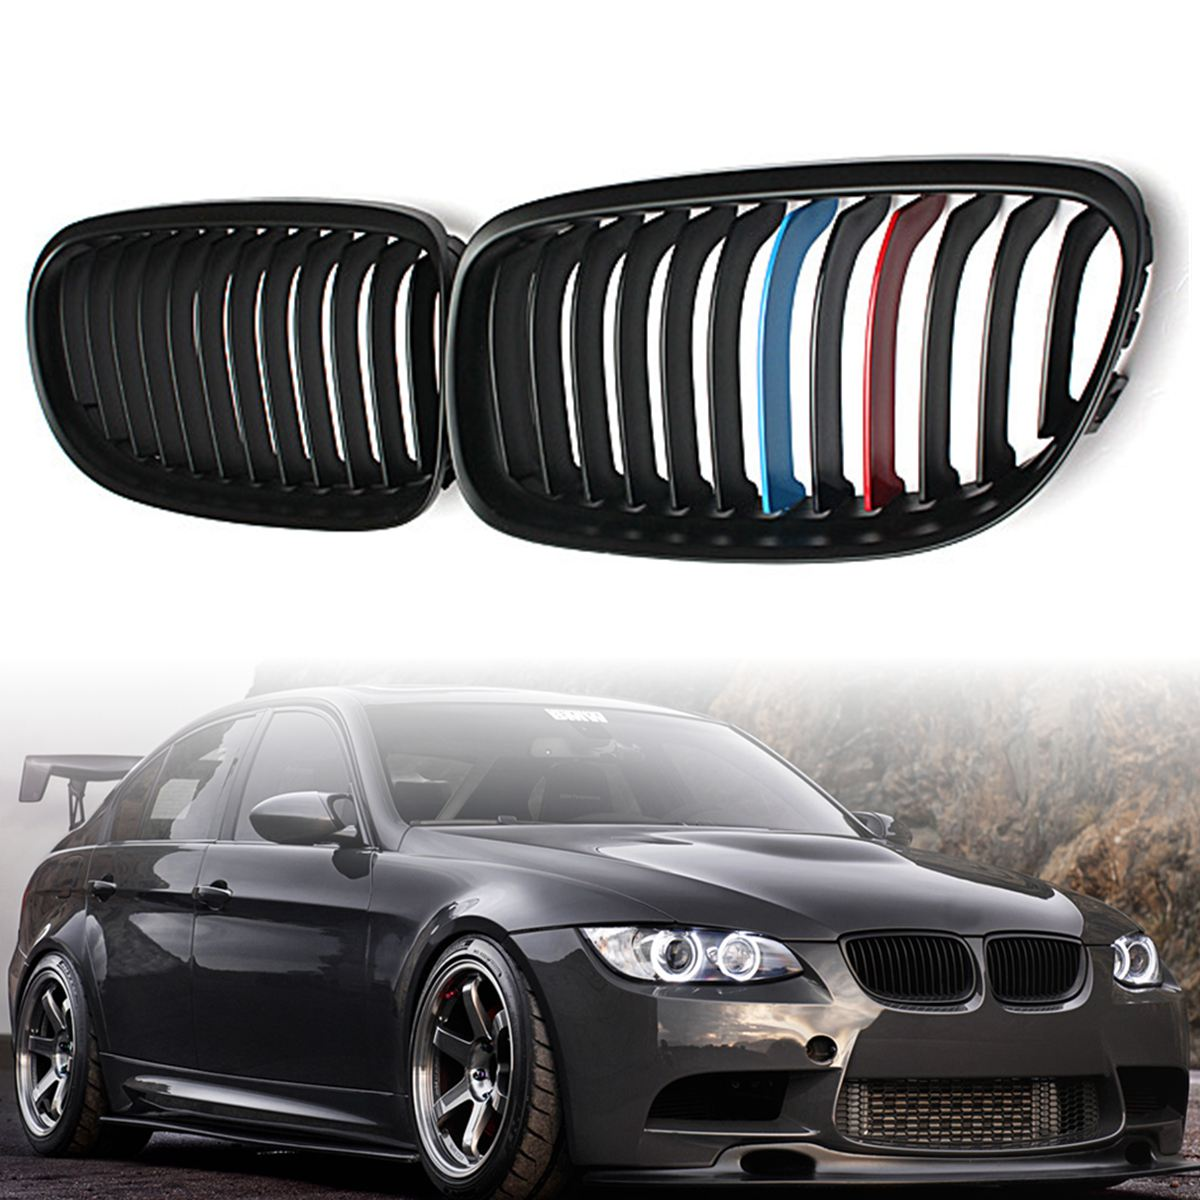 Image 3 - Pair Matte/Gloss Black Car Front Grille For BMW E90 LCI 3 Series Sedan/Wagon 09 11 Racing Grills-in Racing Grills from Automobiles & Motorcycles